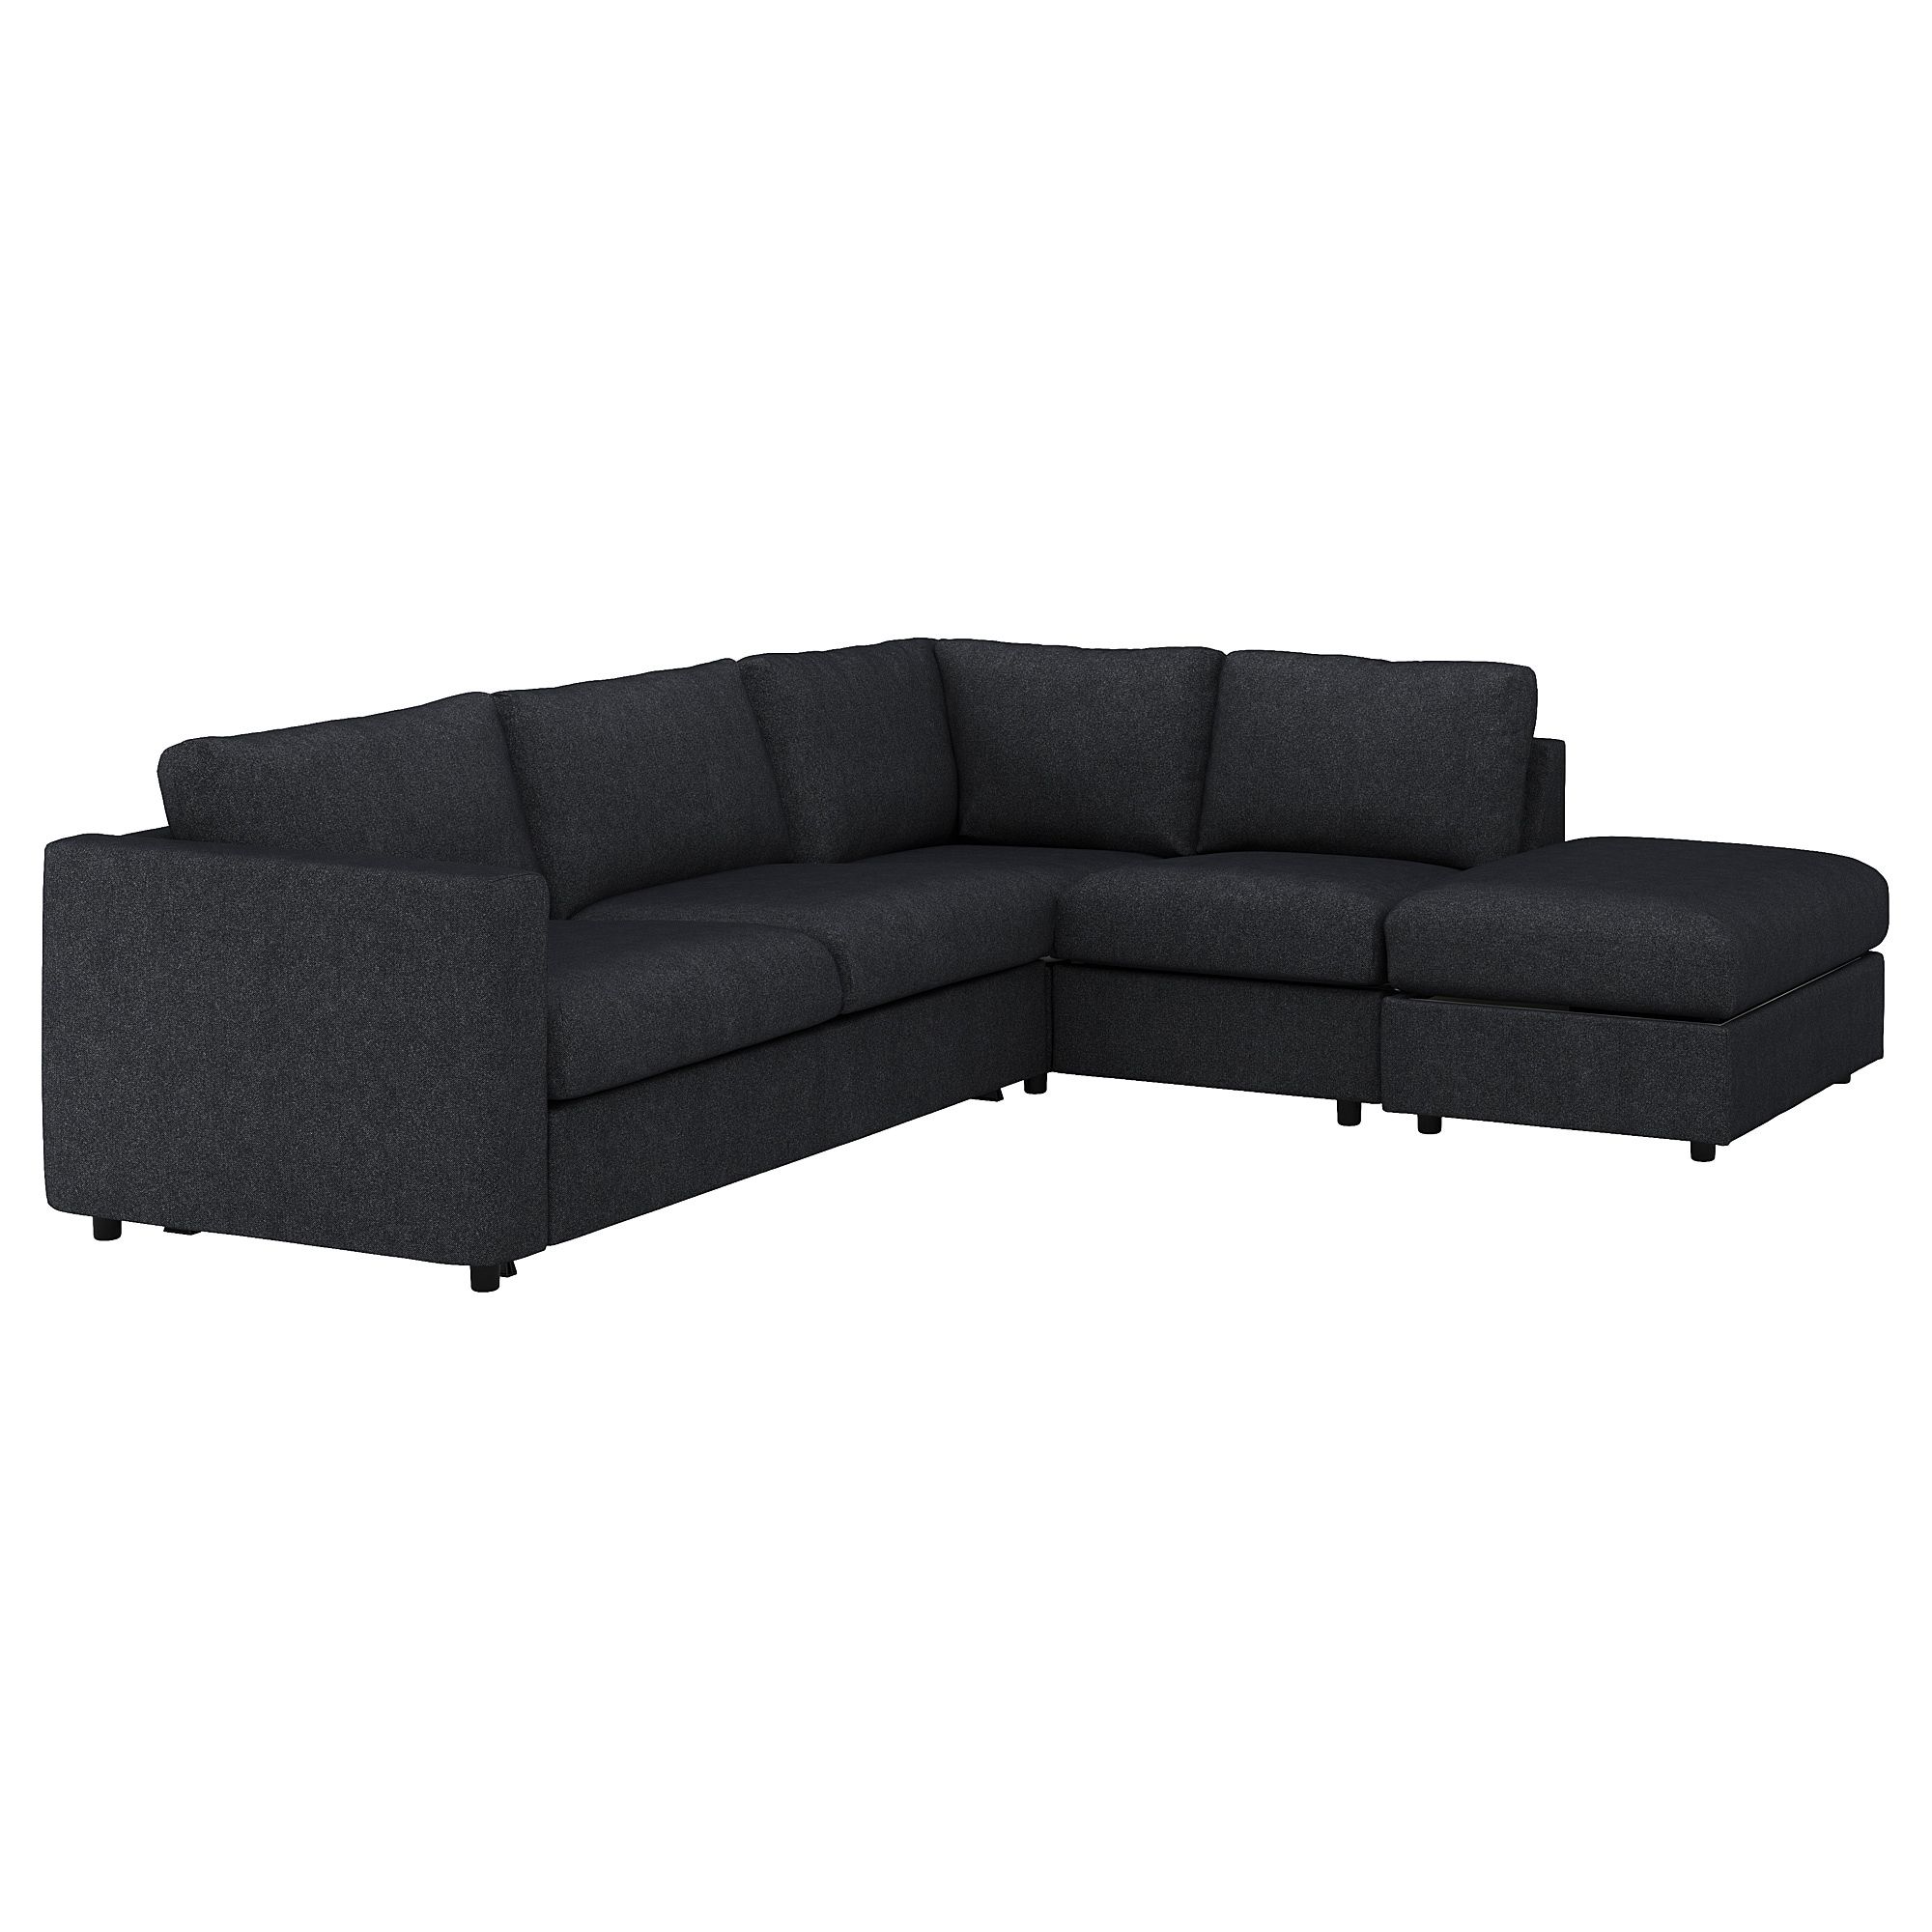 Corner sofa-bed, 4-seat VIMLE with open end, Tallmyra black/grey